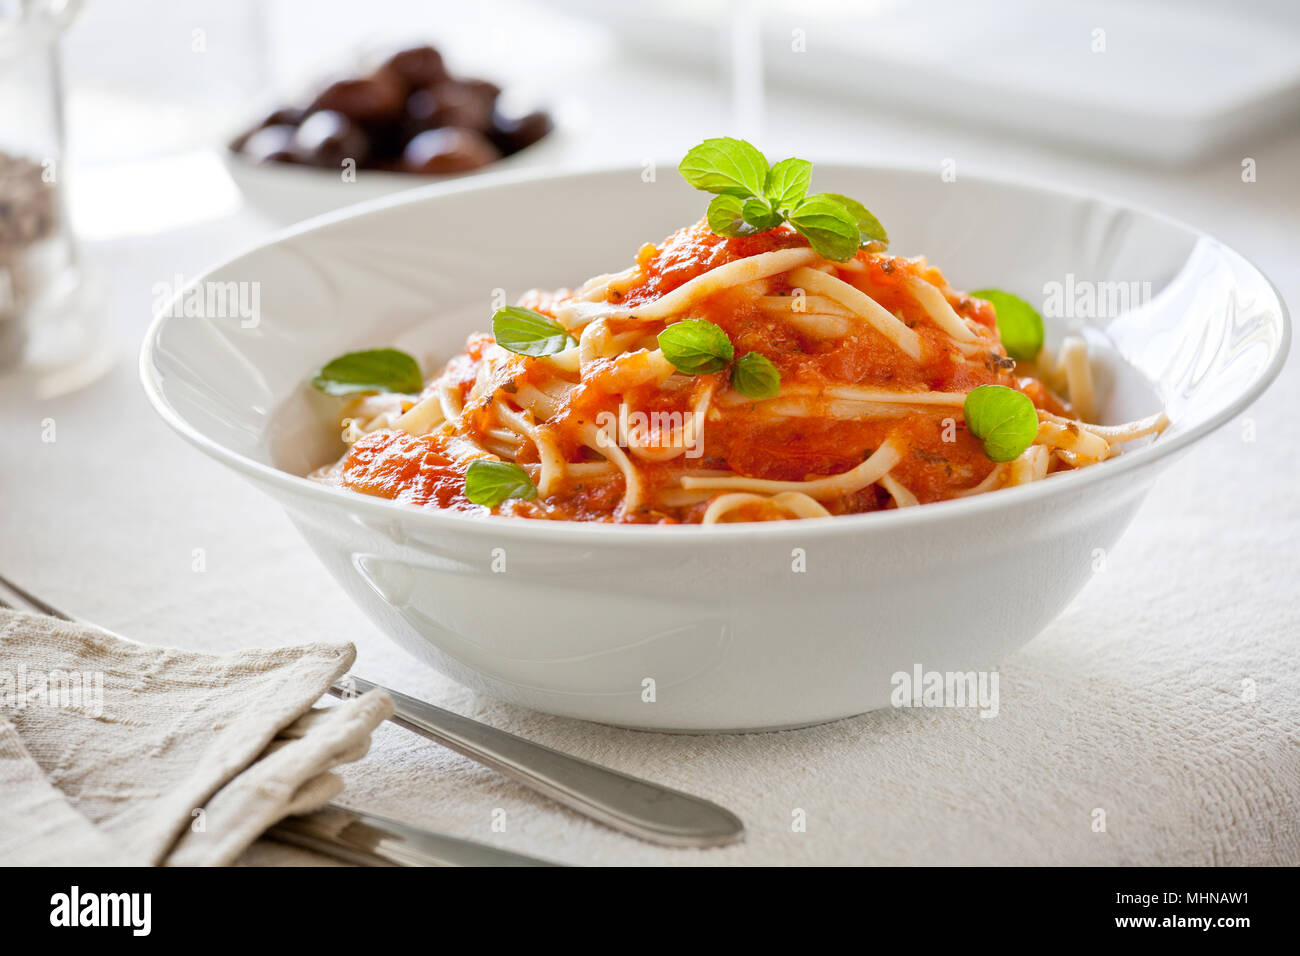 Bowl of pasta with homemade organic tomato sauce - Stock Image